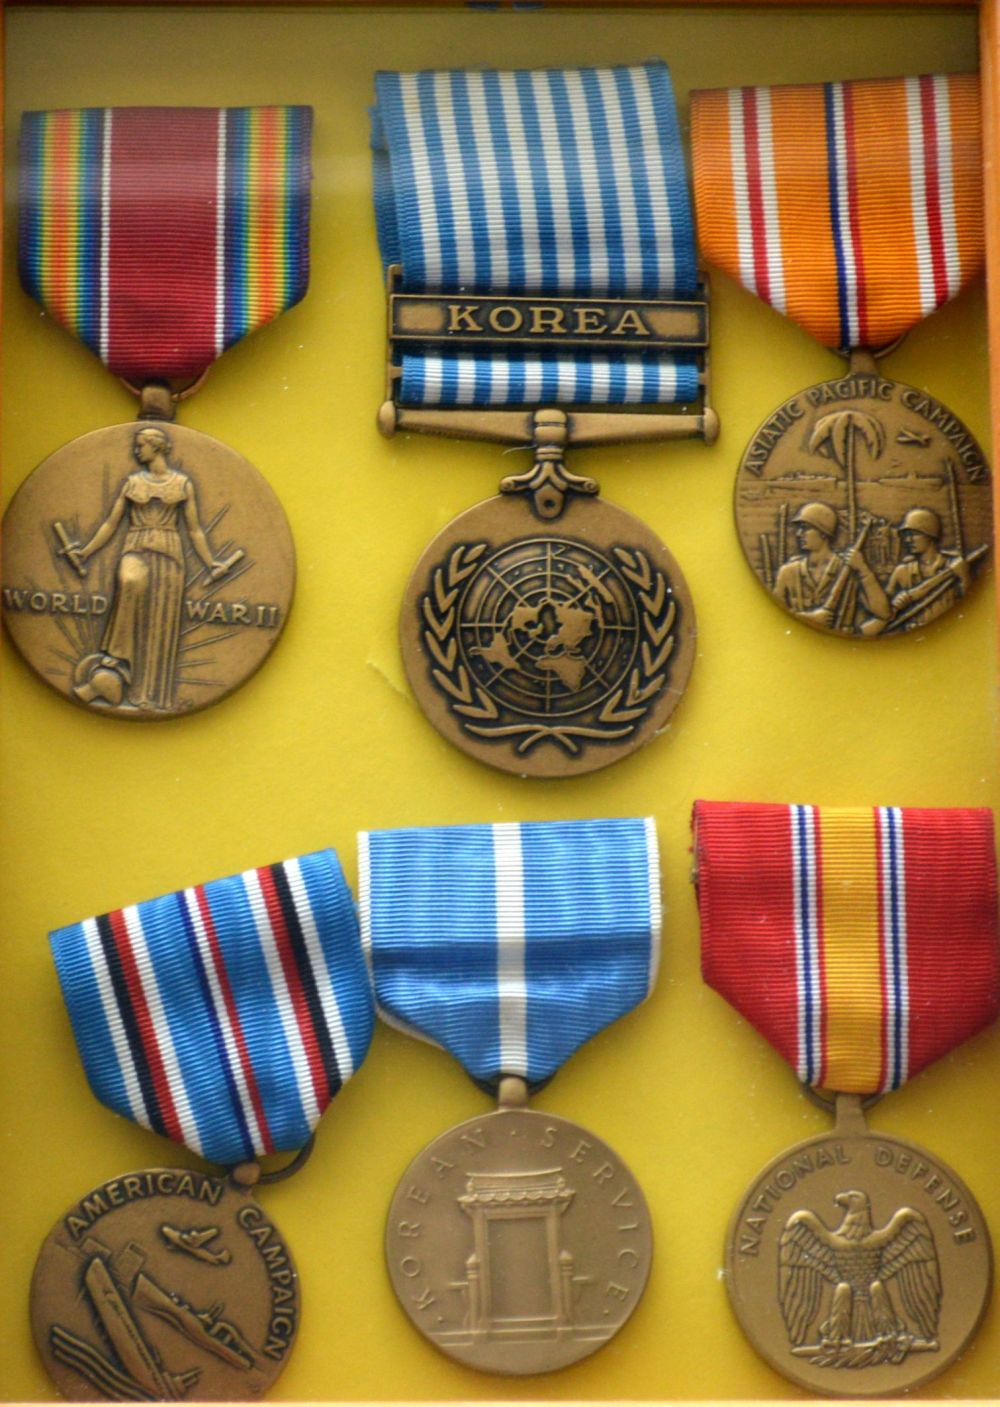 Medals awarded to Robert Lyman for his military service